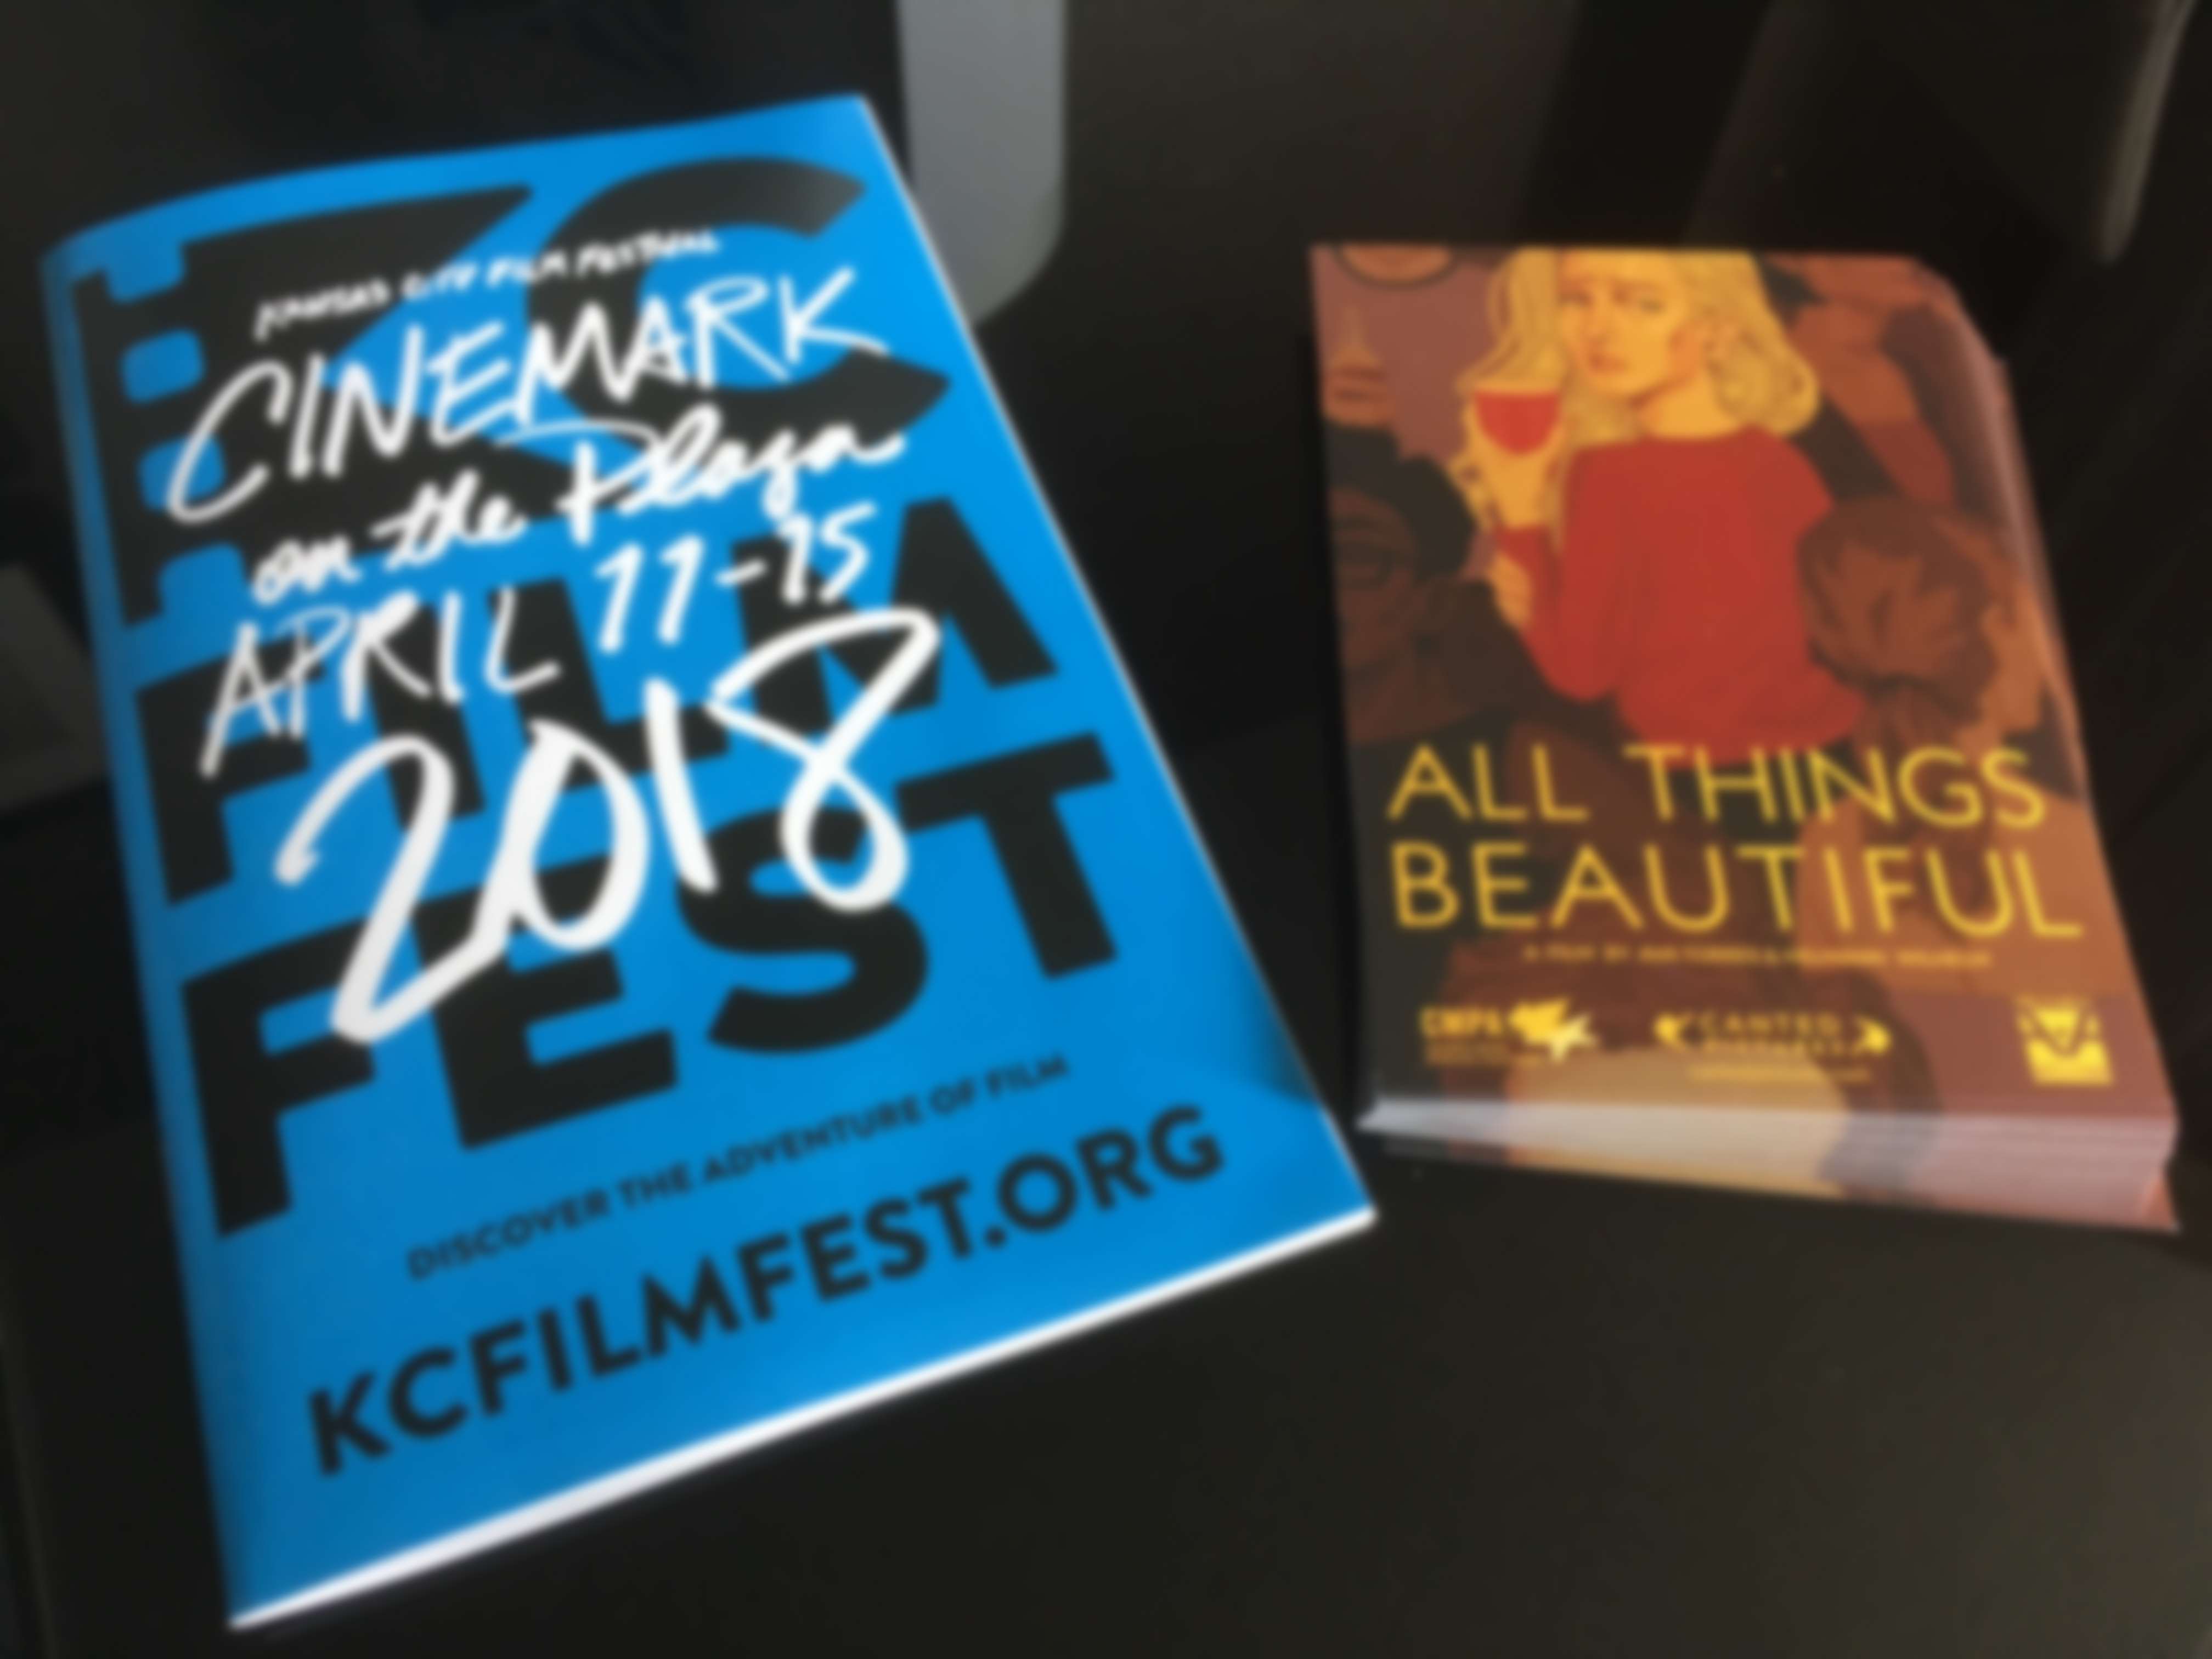 Kansas City FilmFest Photos